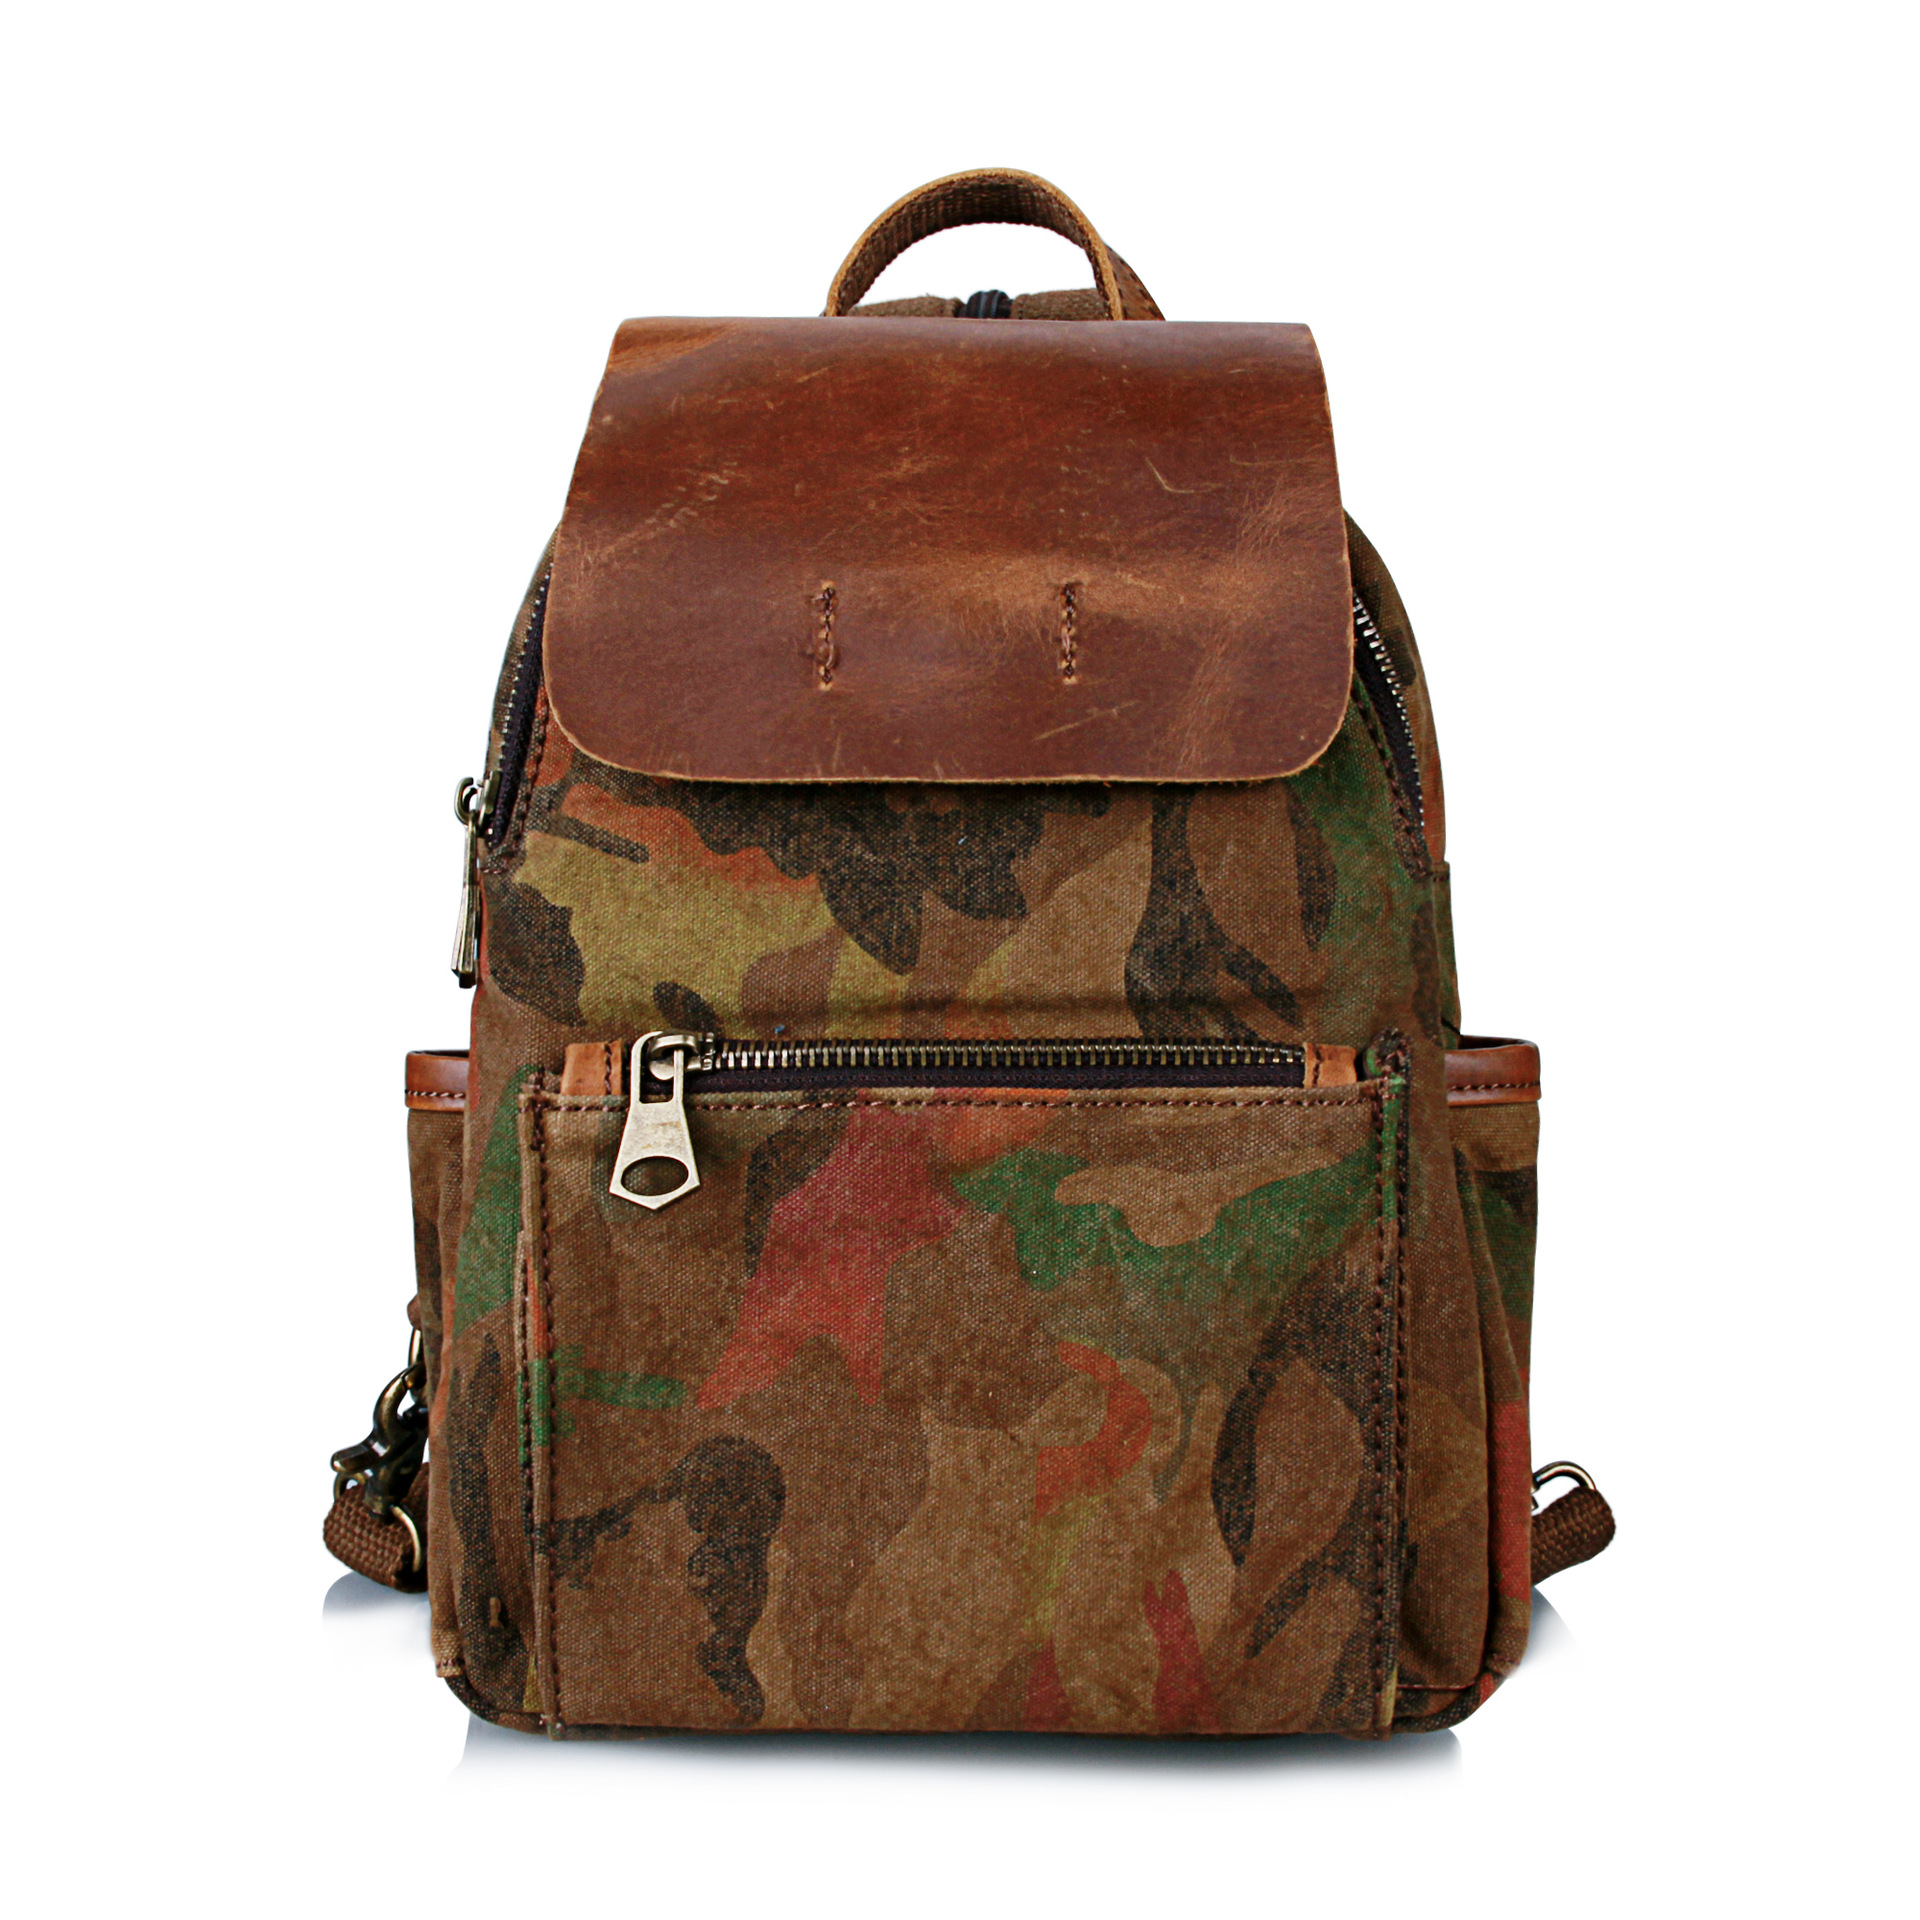 ФОТО Leather Canvas Backpack Tactics Backpack Bag For Men and Women Camouflage Backpack Schoolbag Popular Summer AUGUR Bags